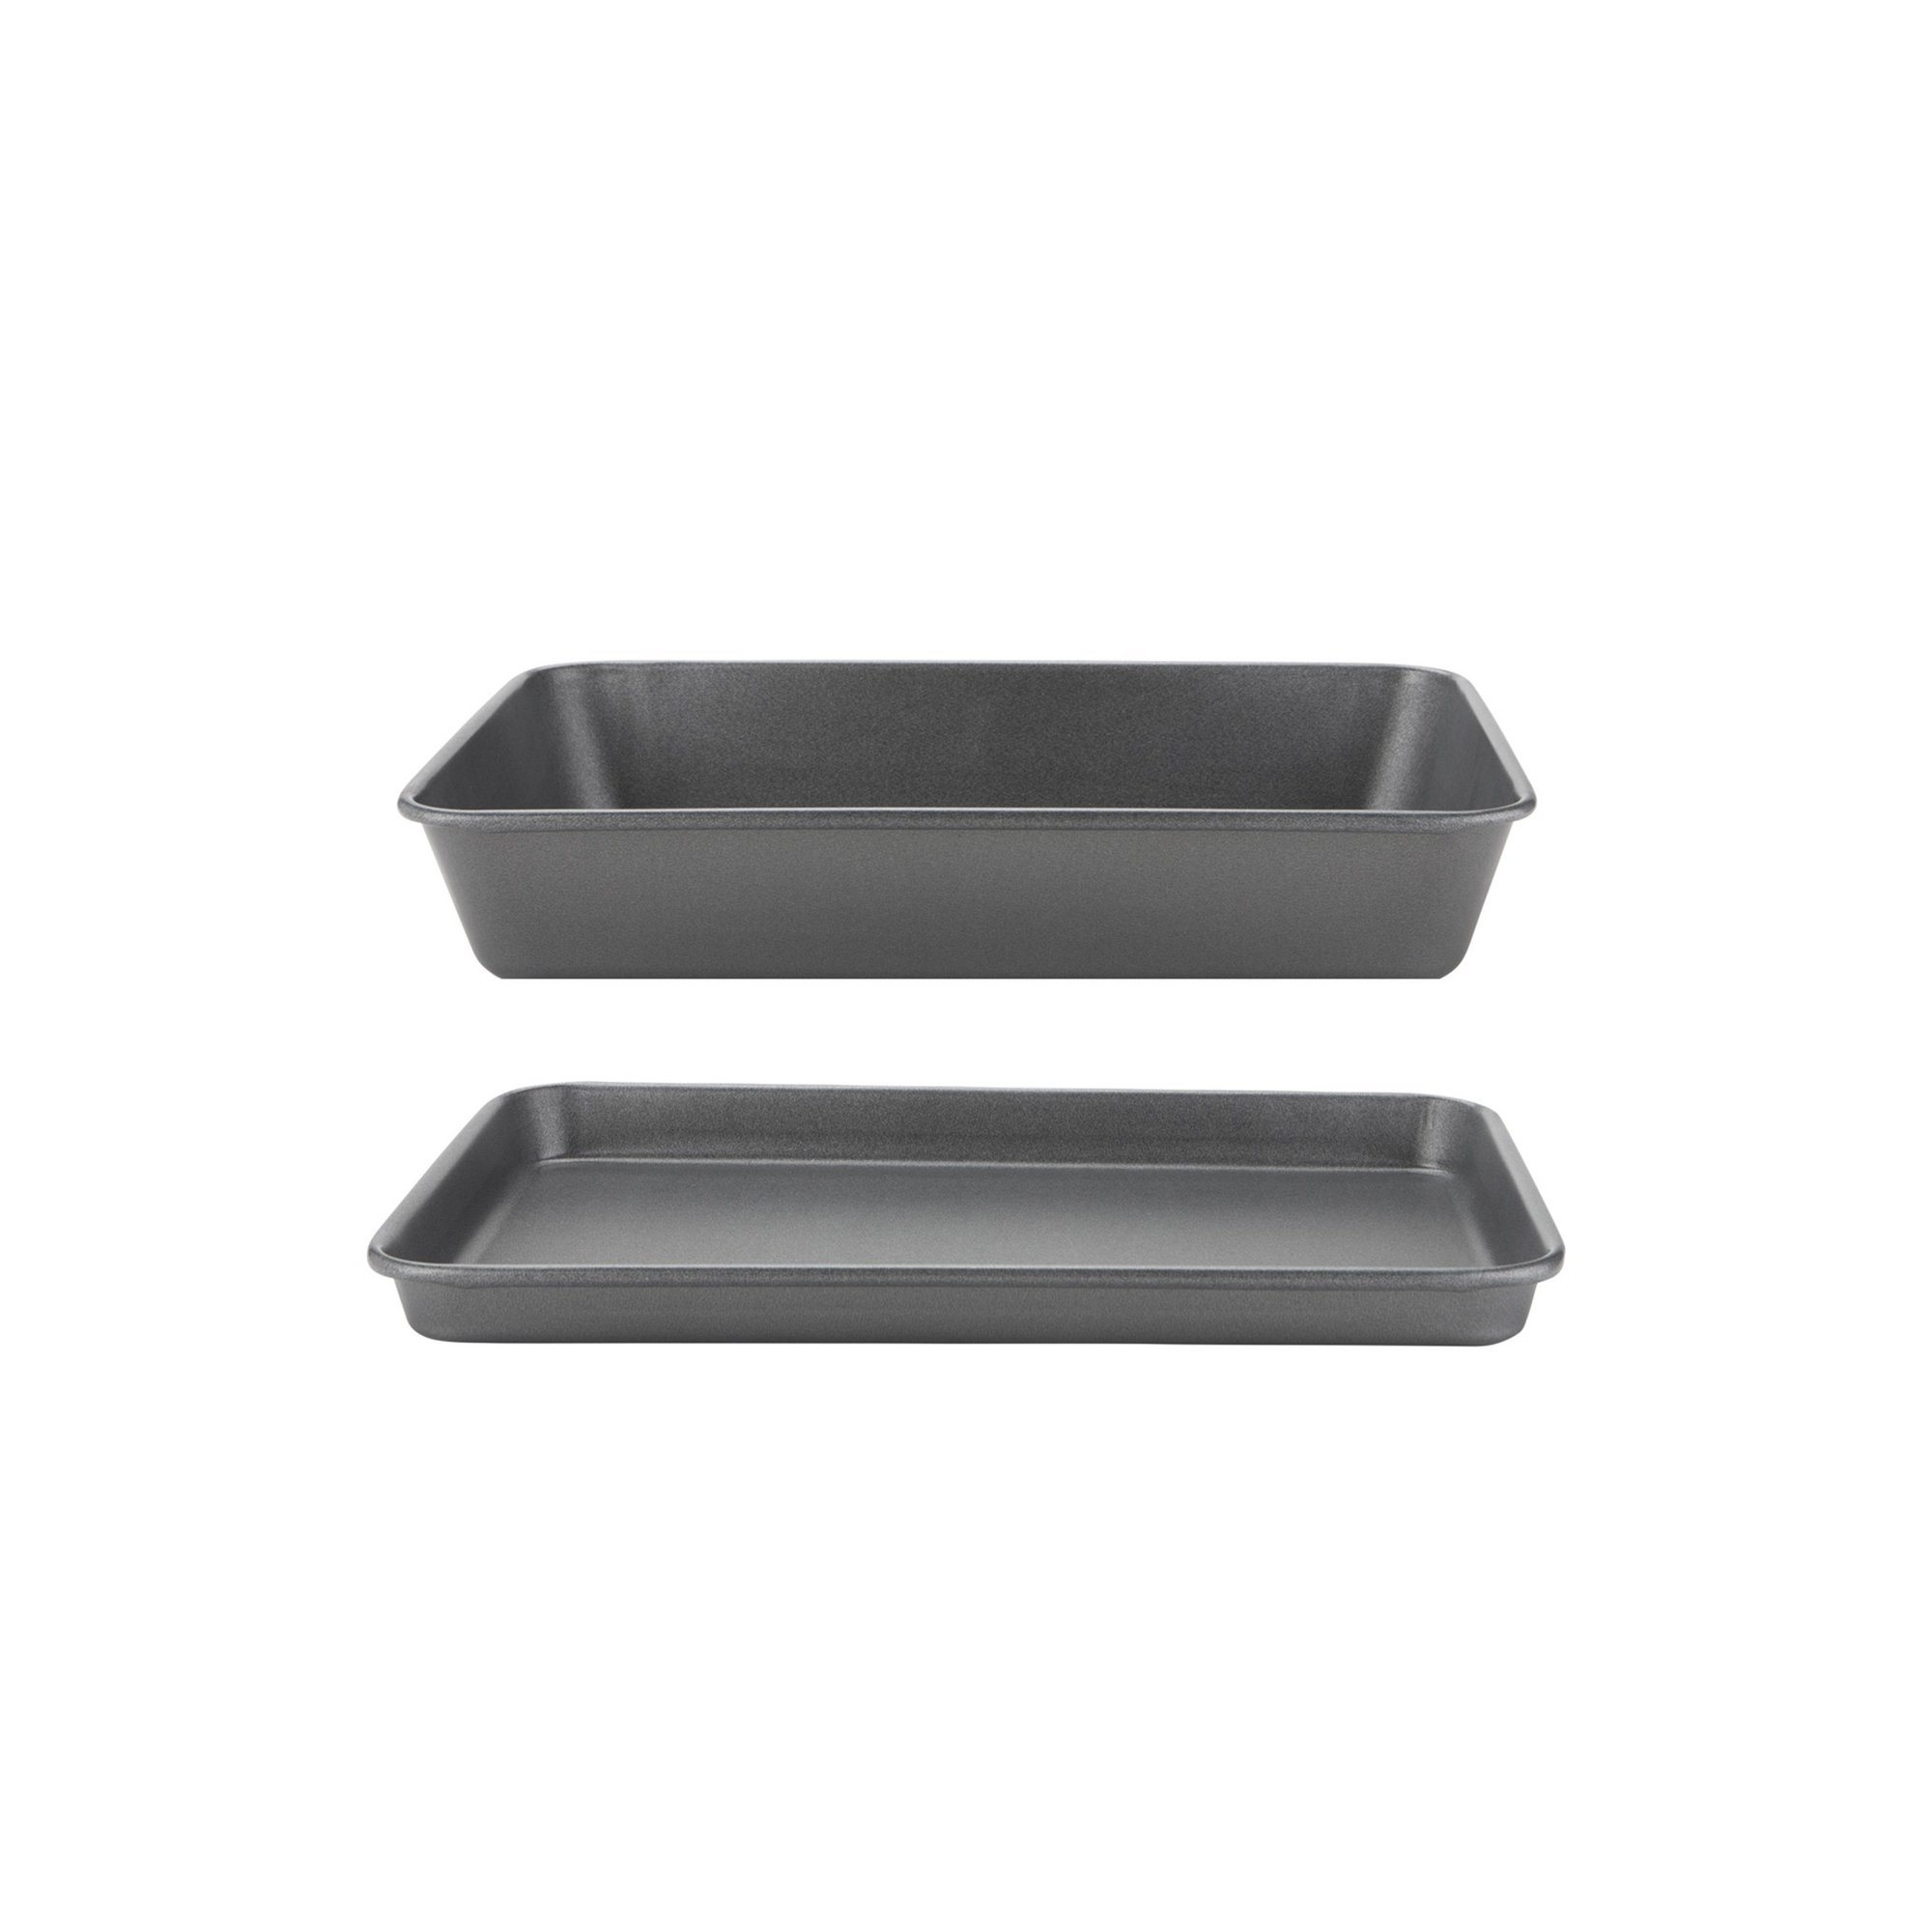 Image of Prestige Oven Tray and Roaster Twin Pack